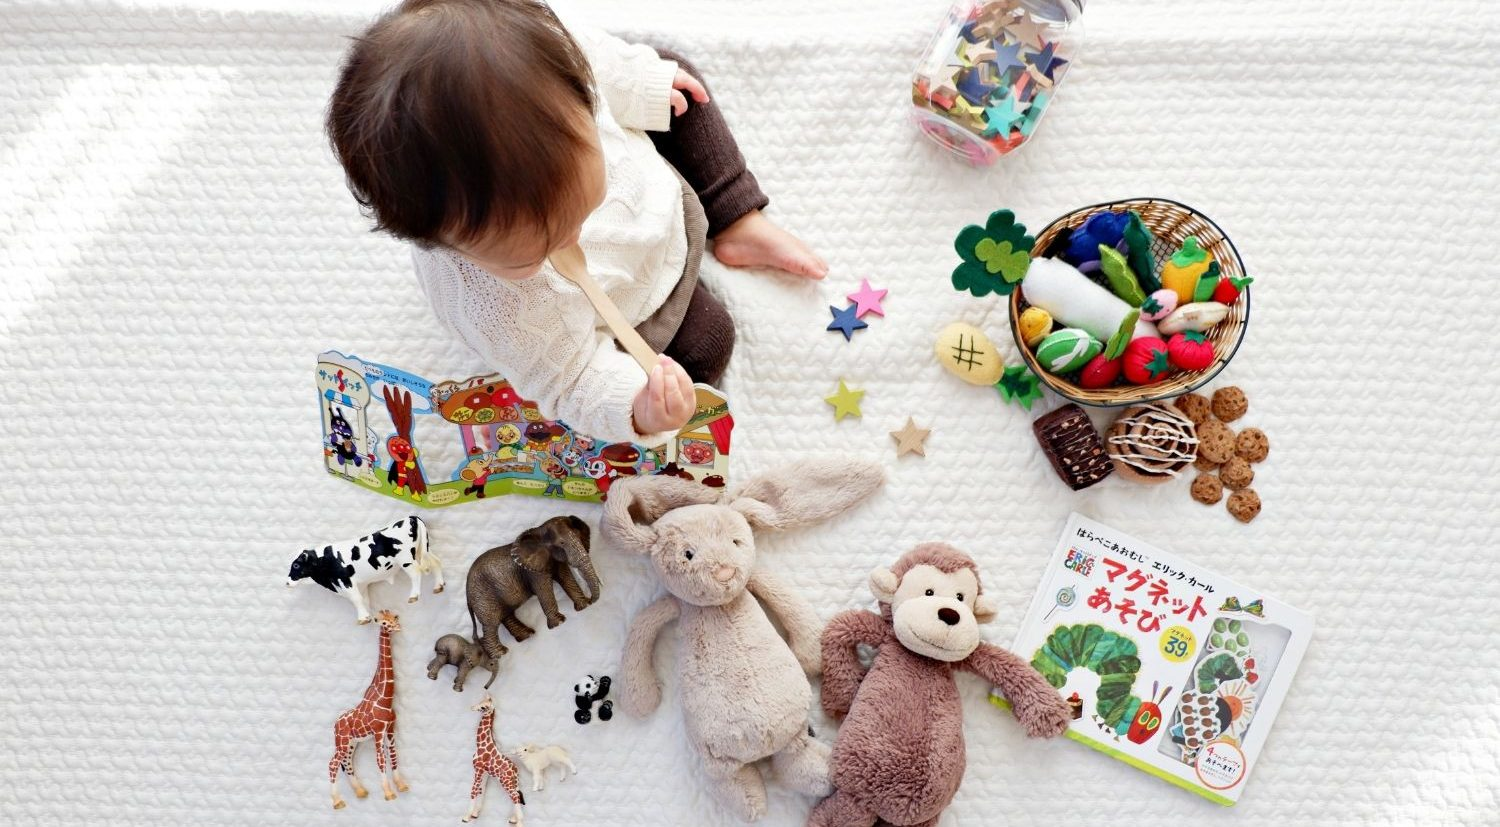 image of toddler playing with toys on a white background